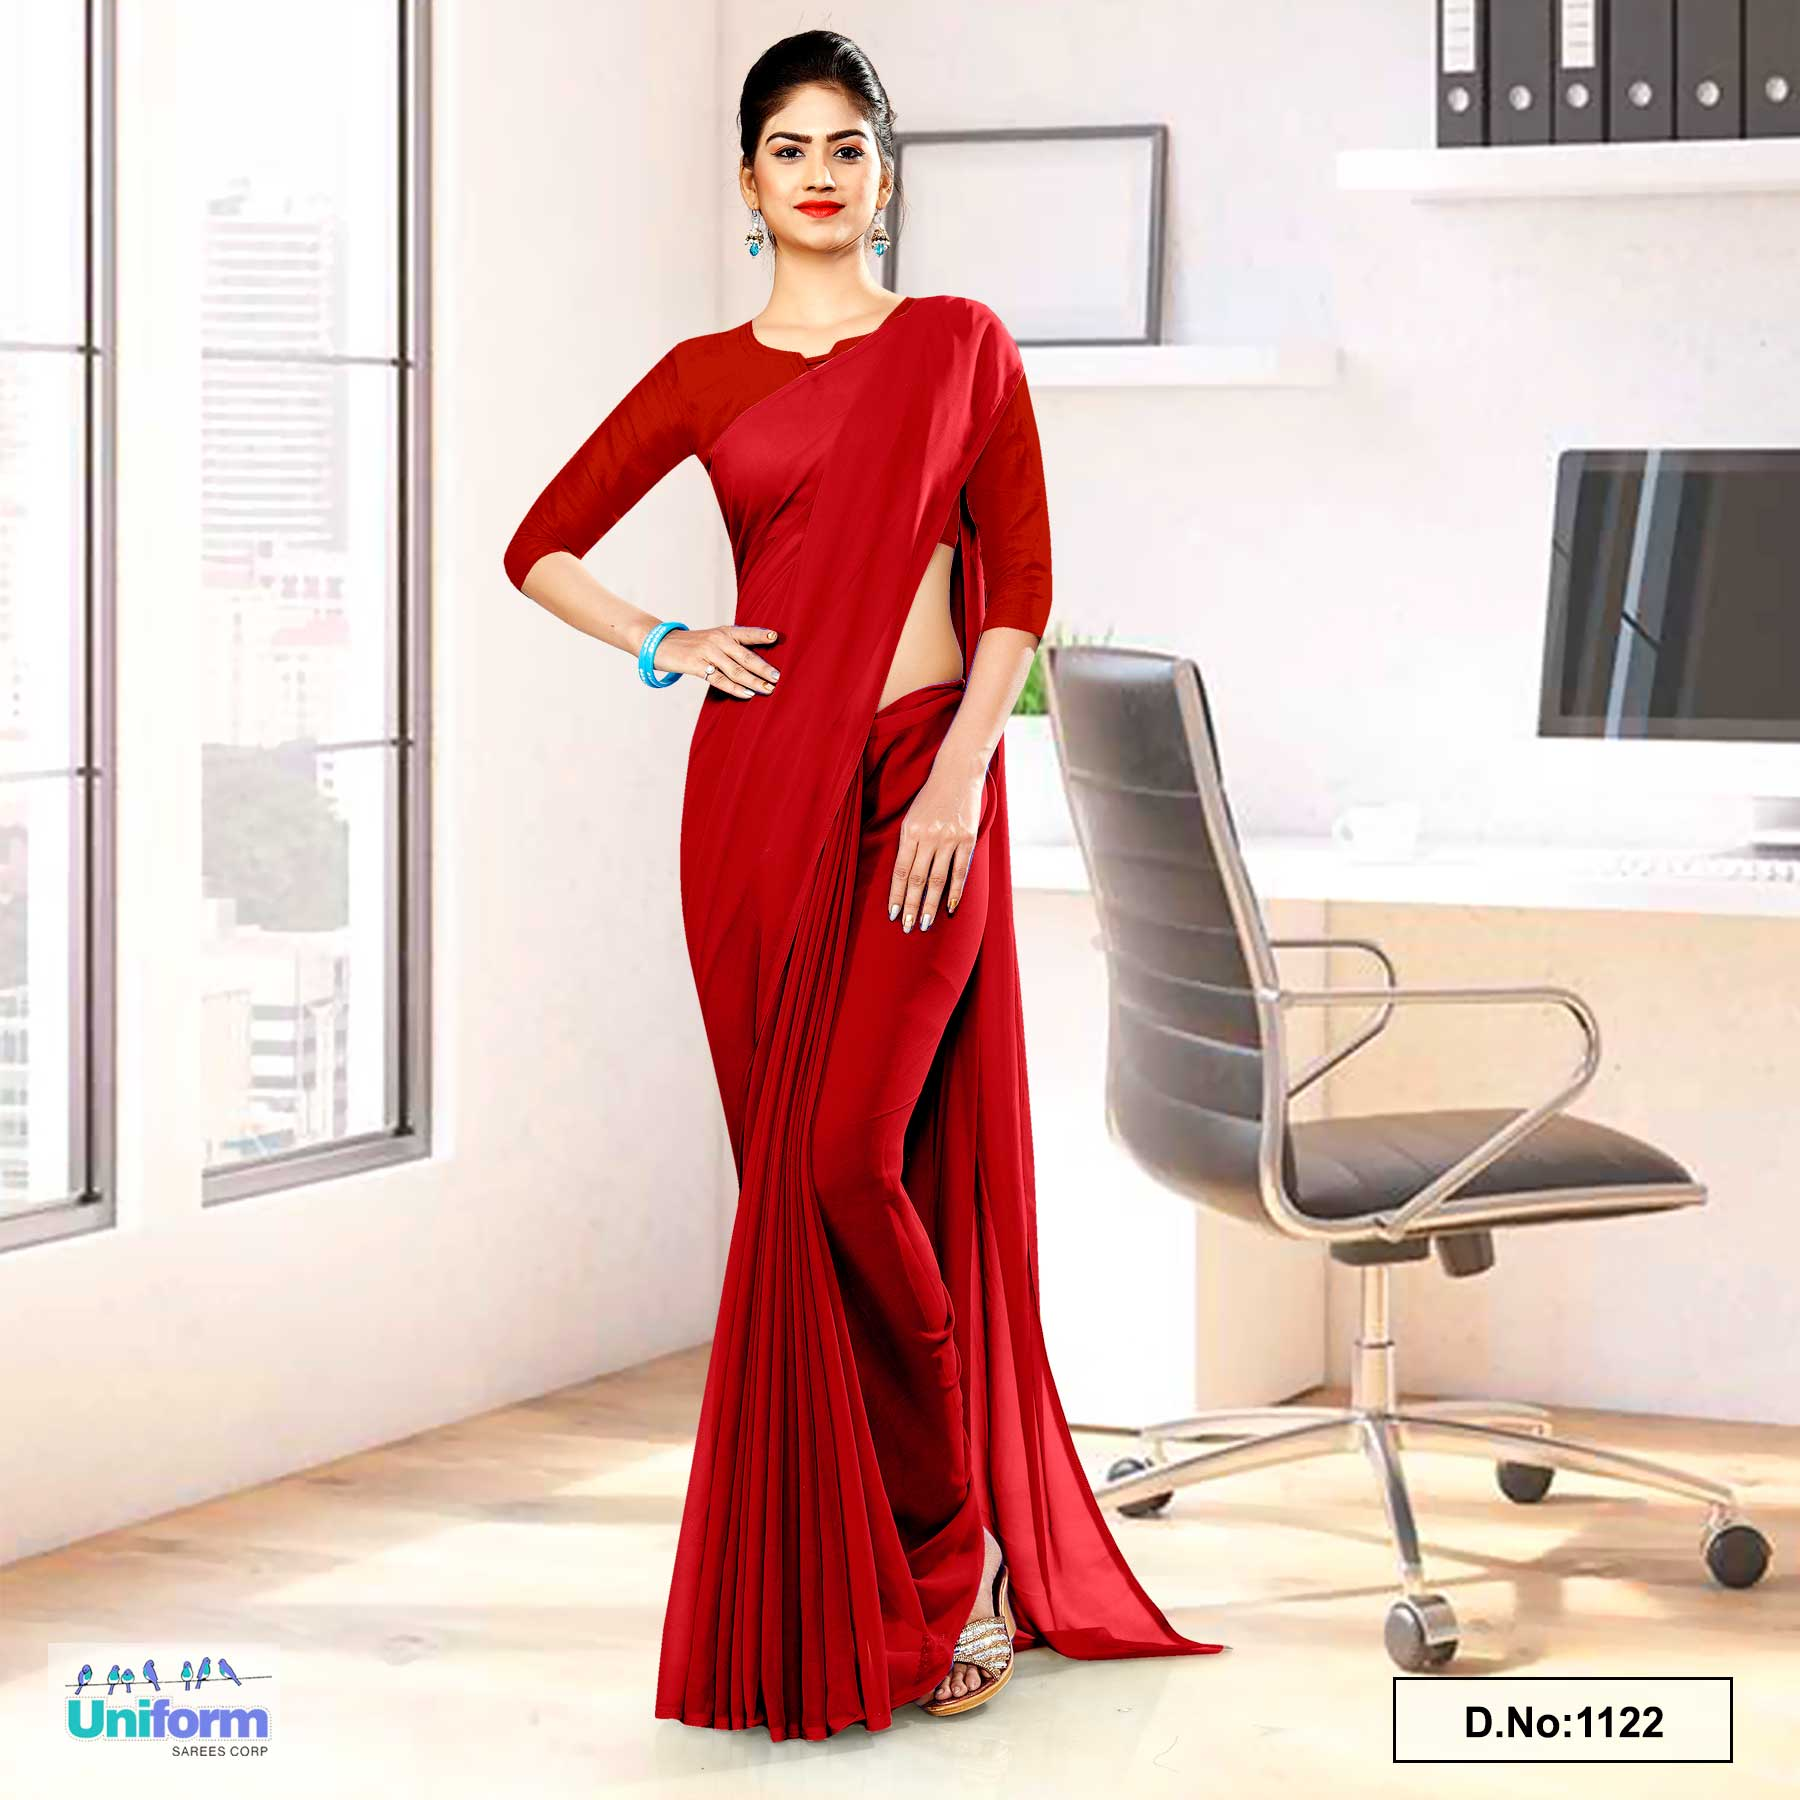 Blood Red Soft Georgette Plain Uniform Sarees For Working Women